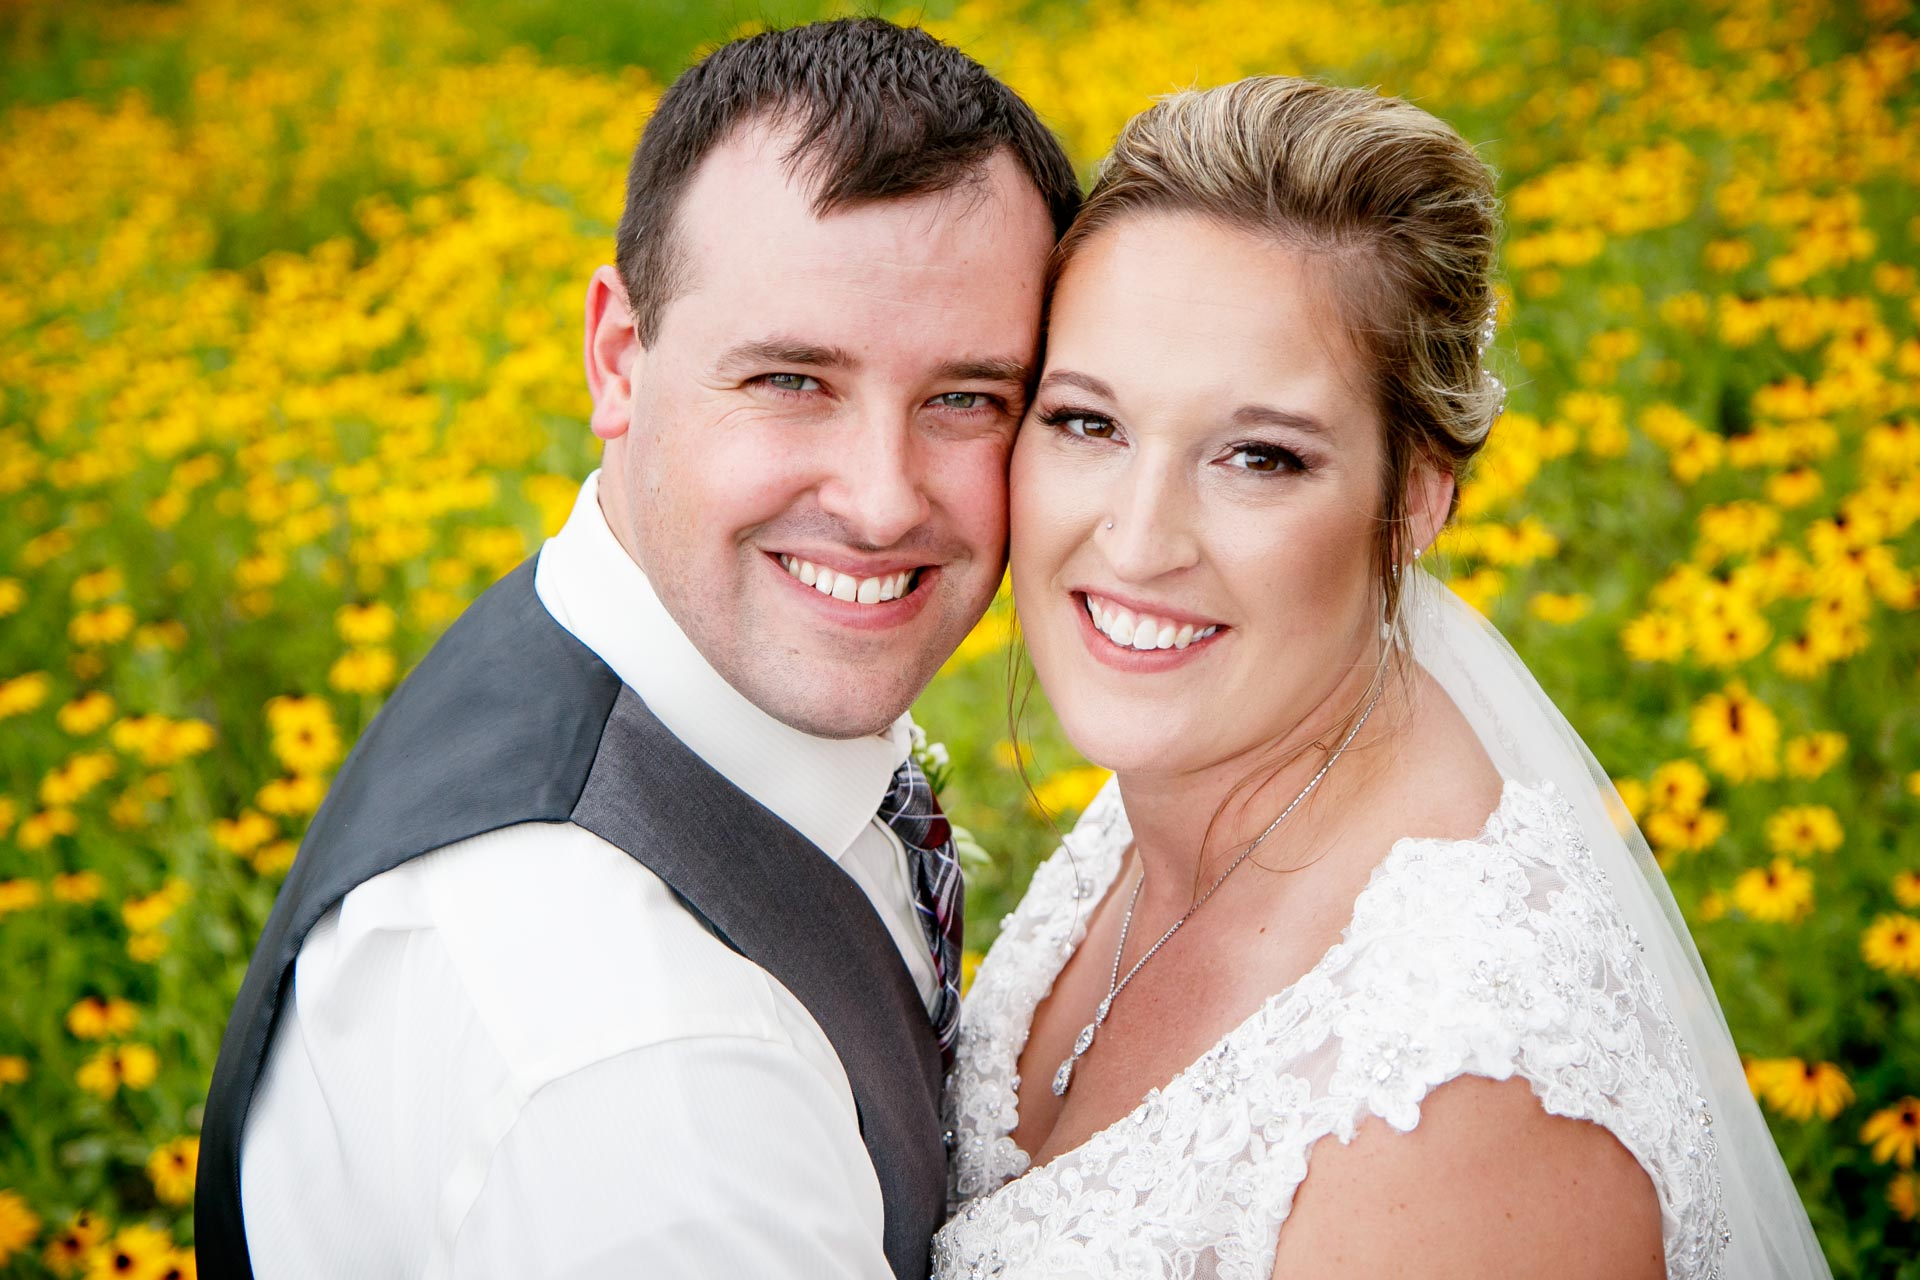 green-bay-botanical-gardens-wedding-adam-shea-photography-green-bay-appleton-neenah-photographer-18.jpg